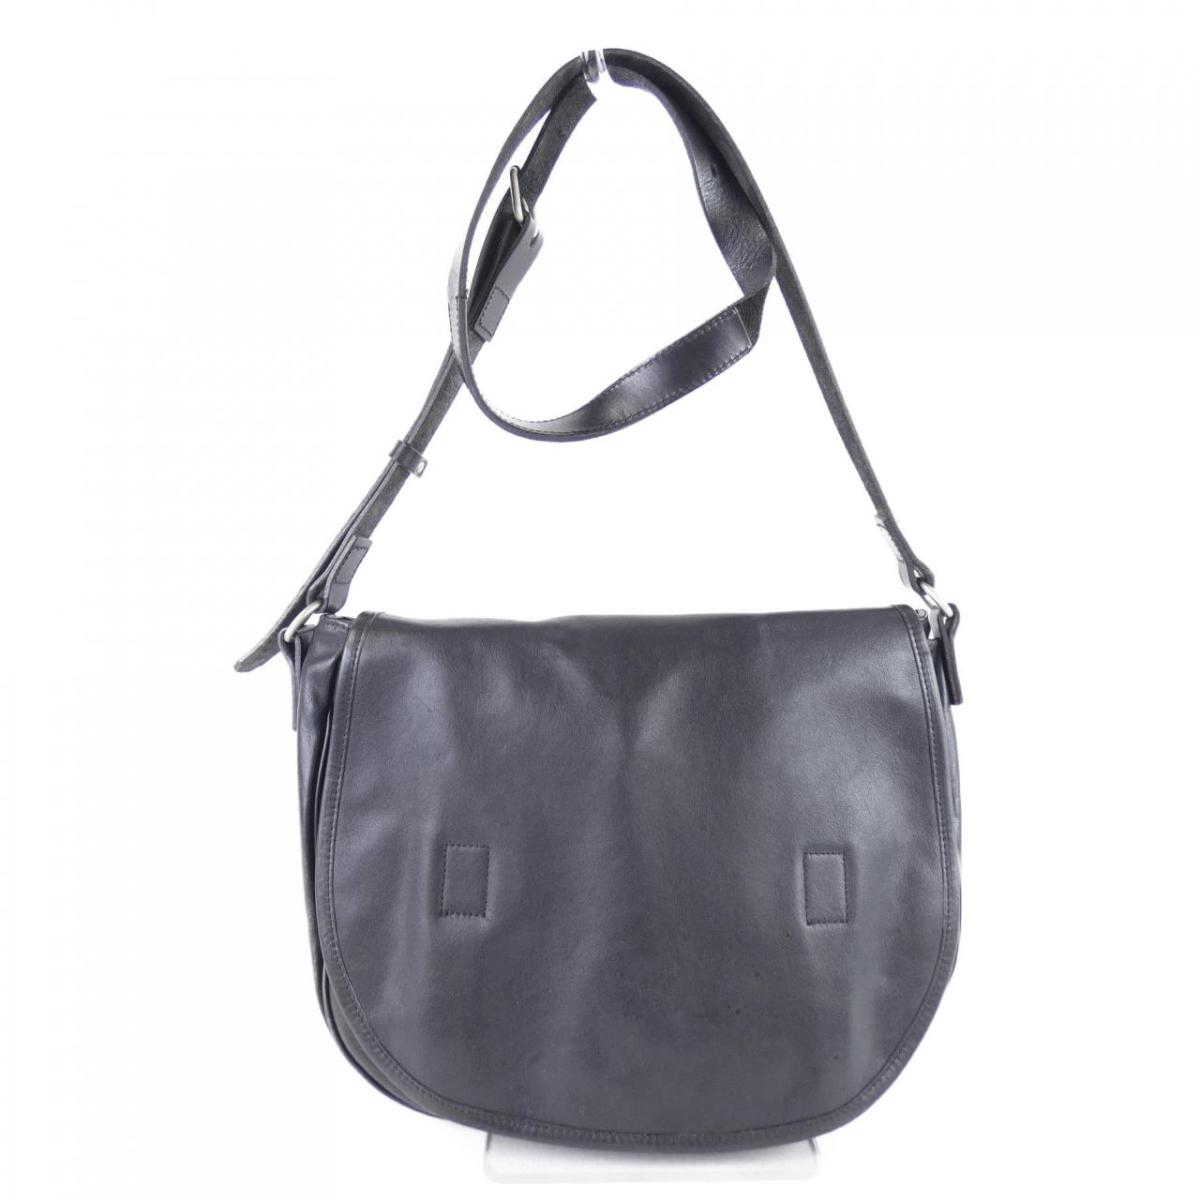 ポーター PORTER BAG MARGARET HOWELL【中古】